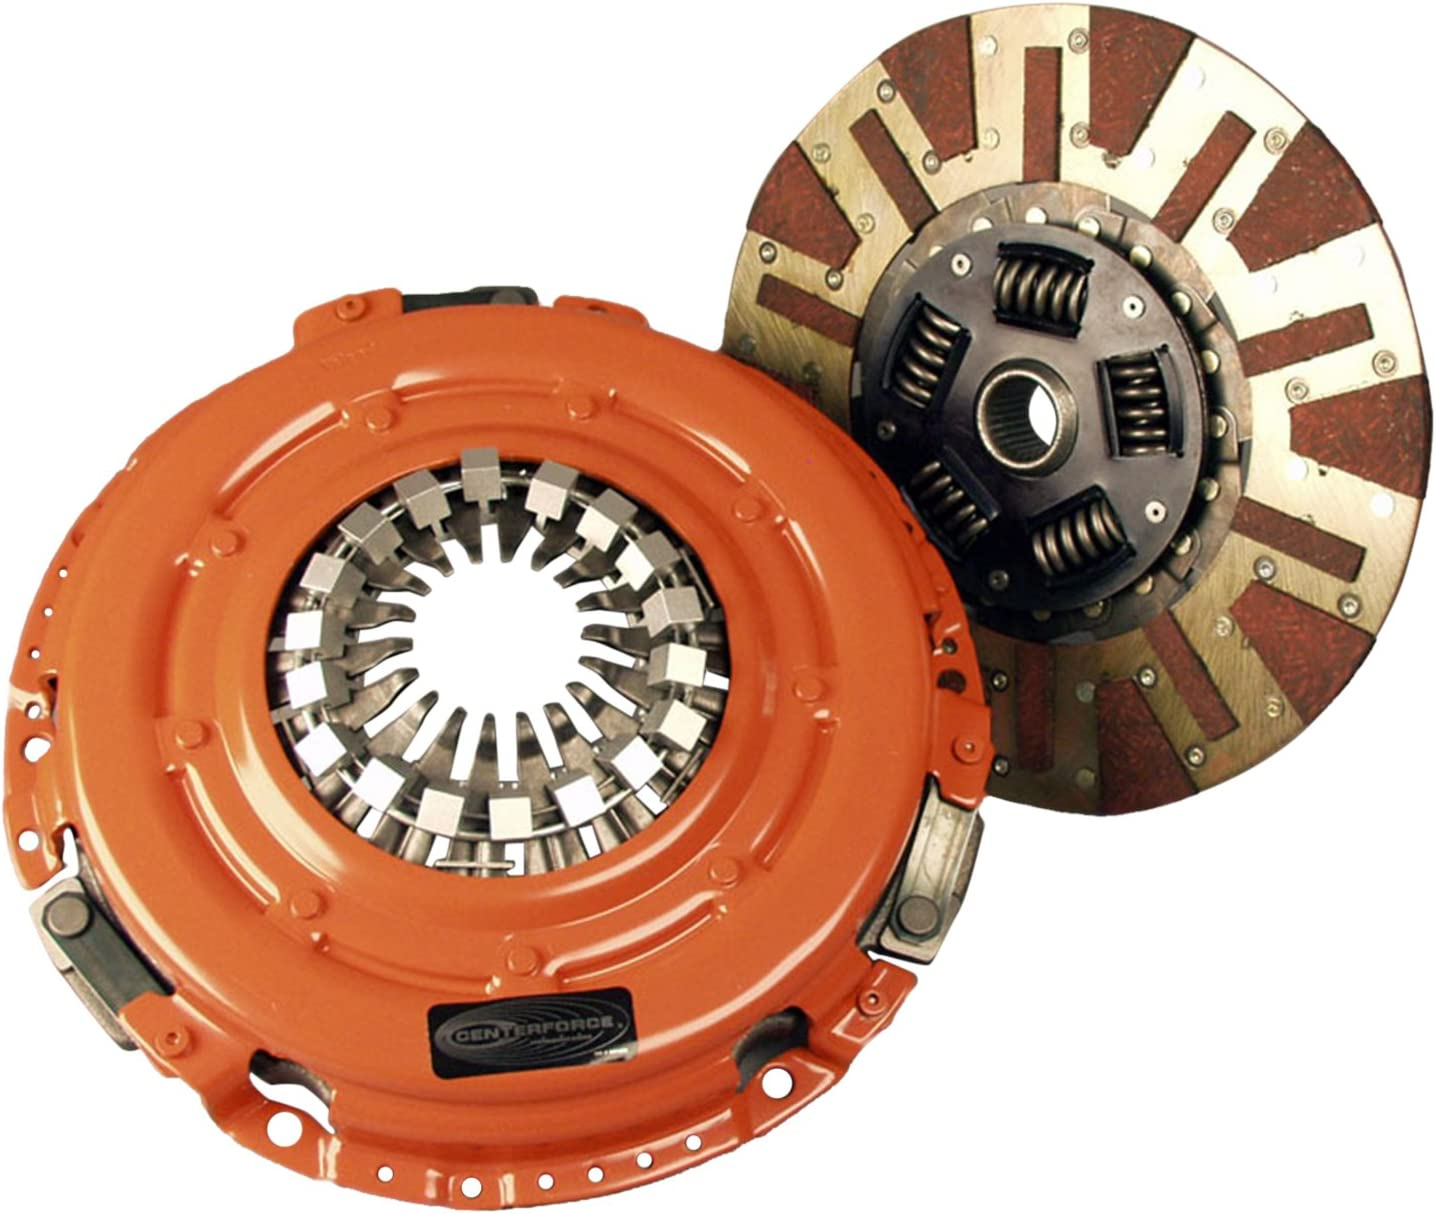 Max 61% OFF Centerforce DF395010 Dual Friction excellence Clutch and Pressure Dis Plate